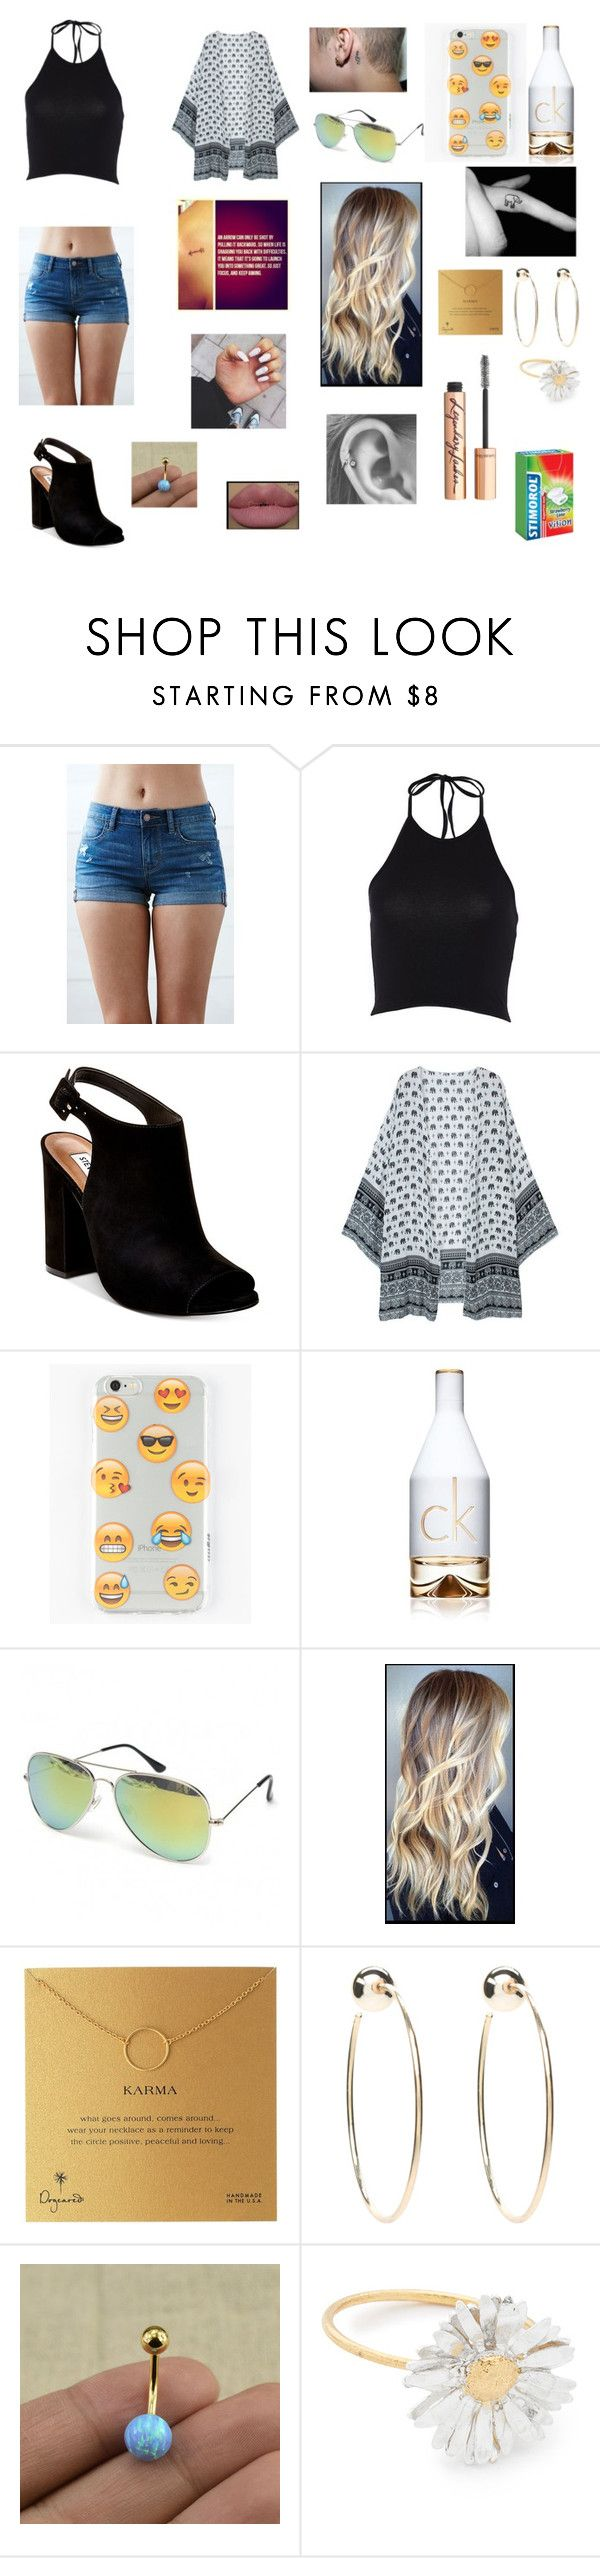 Untitled #224 by katrine-frid on Polyvore featuring Bullhead Denim Co., Steve Madden, Bebe, Dogeared, Alex Monroe, Ankit, Charlotte Tilbury and Calvin Klein